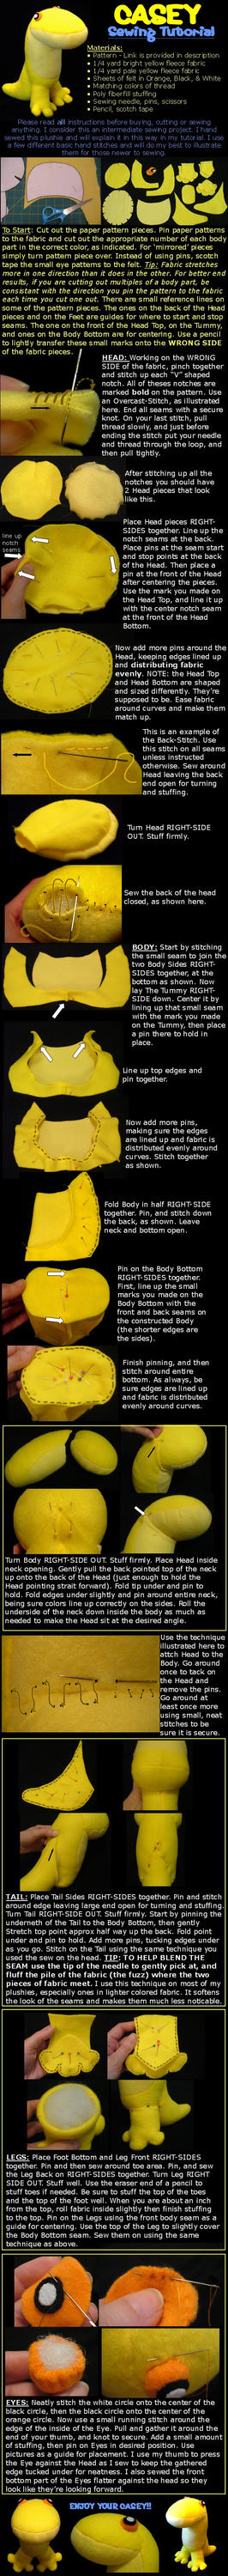 Casey Sewing Tutorial by lishlitz